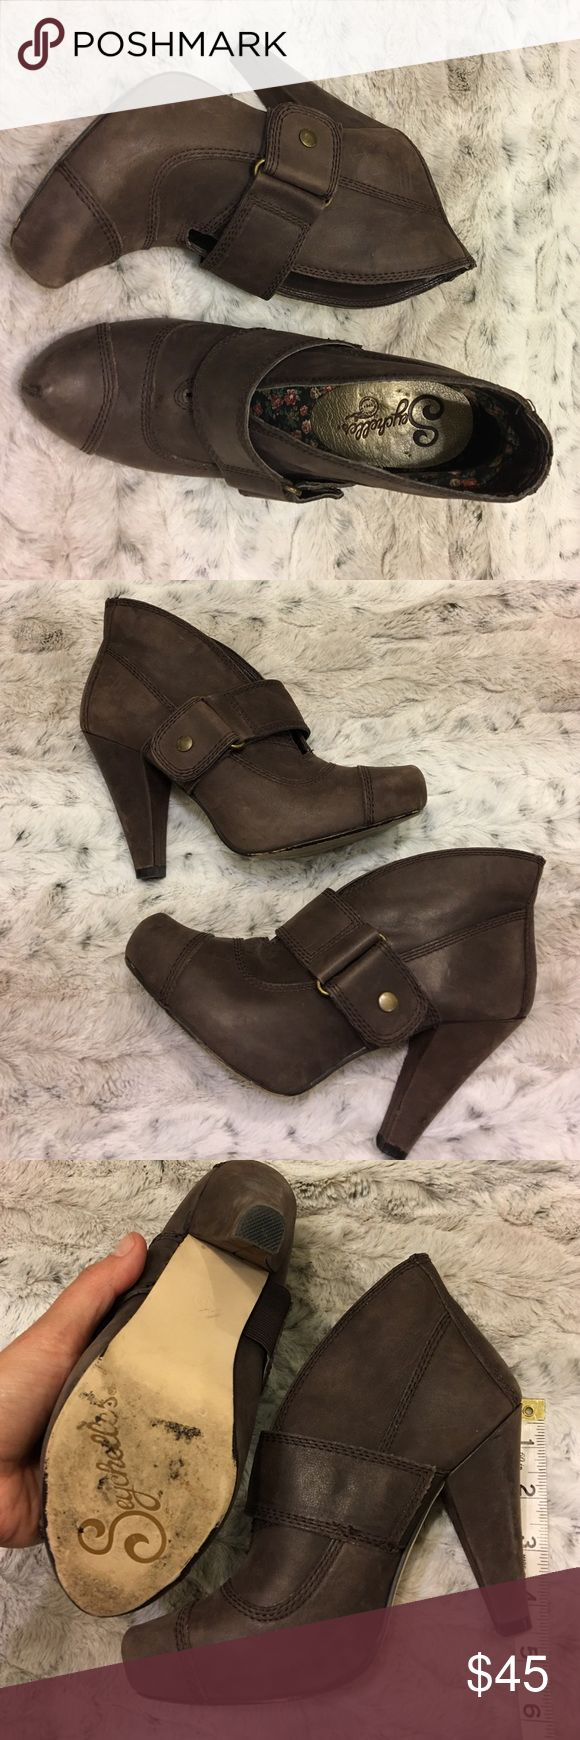 """Seychelles booties Brown leather Seychelles boots with side buckle/snap to close, 4""""tall in great condition,normal wear shows in leather but hardly noticeable,looks new Seychelles Shoes Ankle Boots & Booties"""